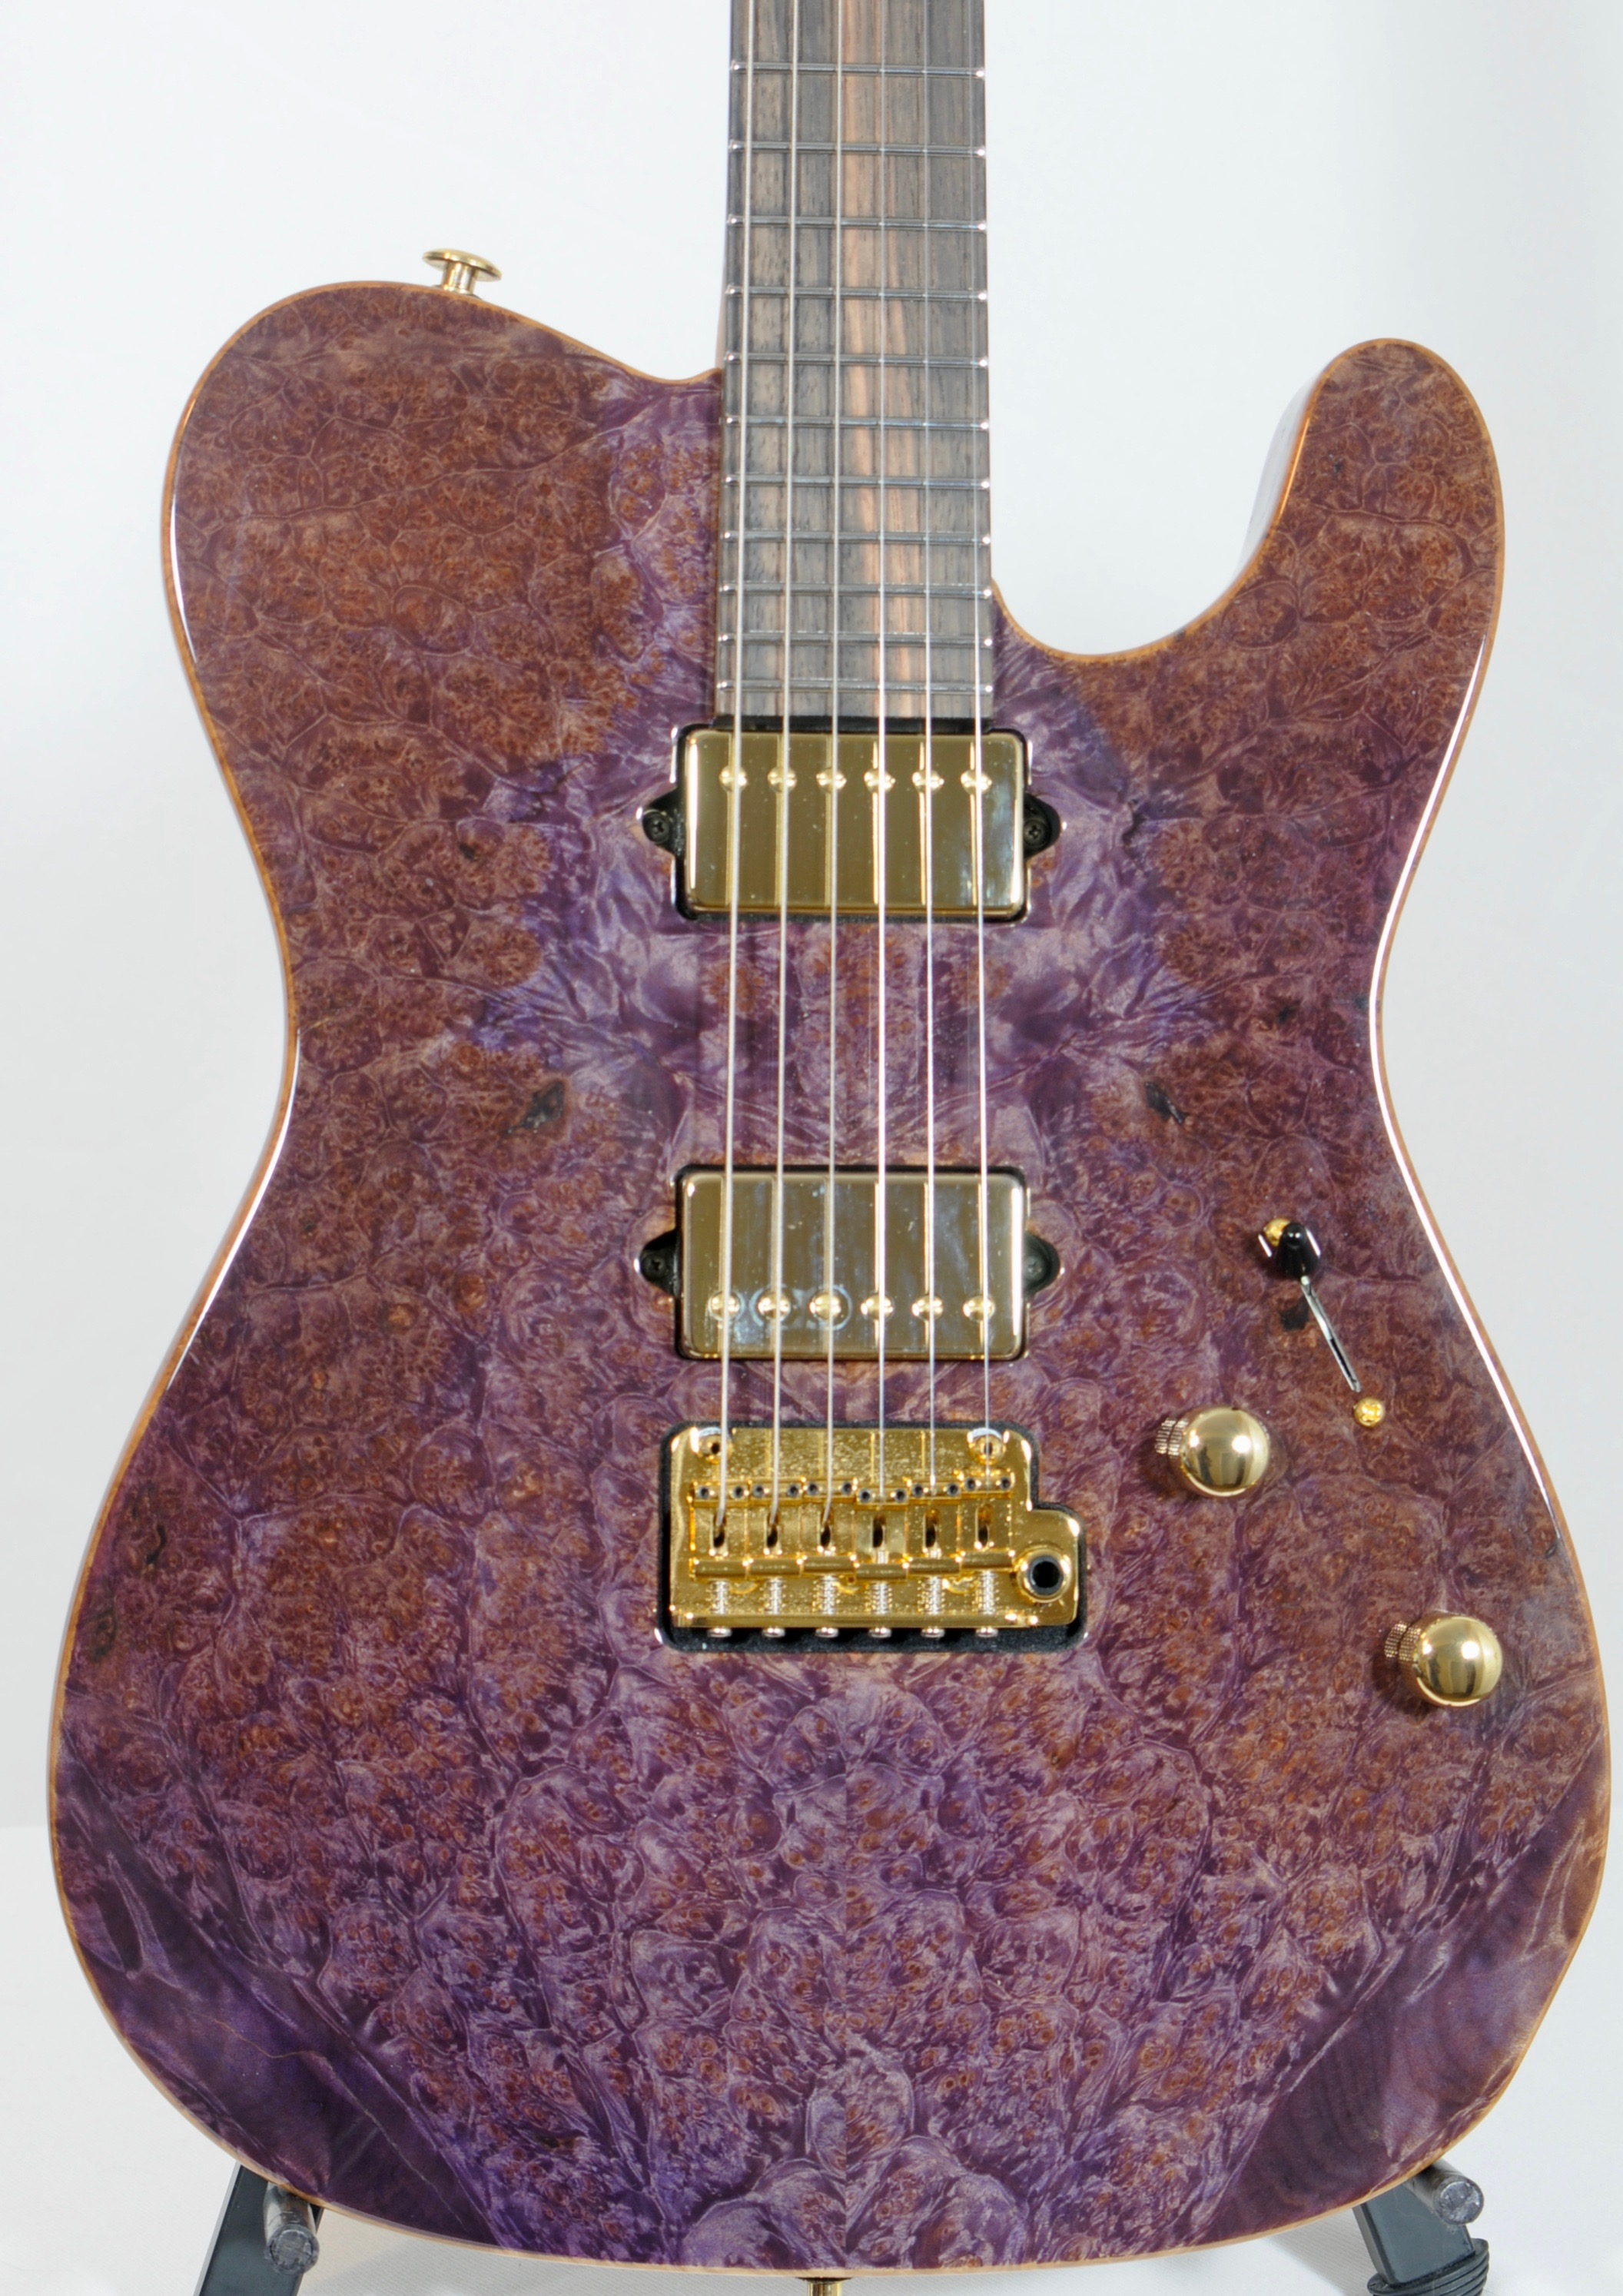 2015 SUHR Classic T 24 – Black Limba / Burl Maple / 5A Birdeye Maple